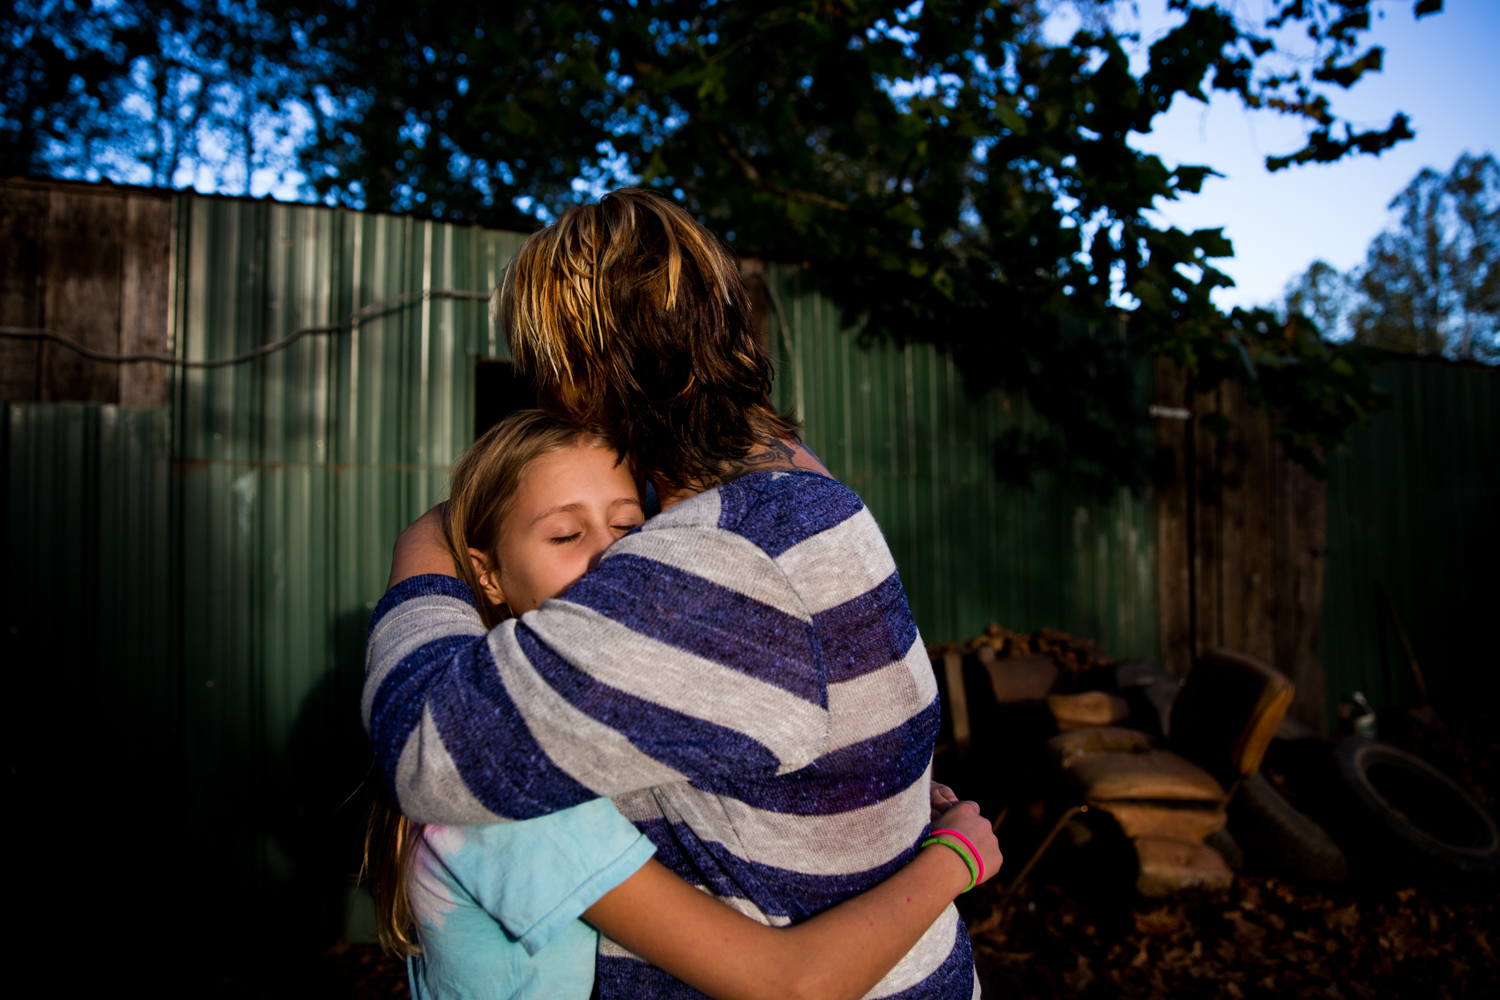 Whitney hugs her adoptive sister, Angel, at their family's property off of old route 33 near Nelsonville. When Whitney moved away from the Swarts' house she returned to an abusive husband, and her relationship with her adoptive family became strained. After getting clean and starting a new relationship she was able to return to her adoptive family's home to visit for the first time in months.